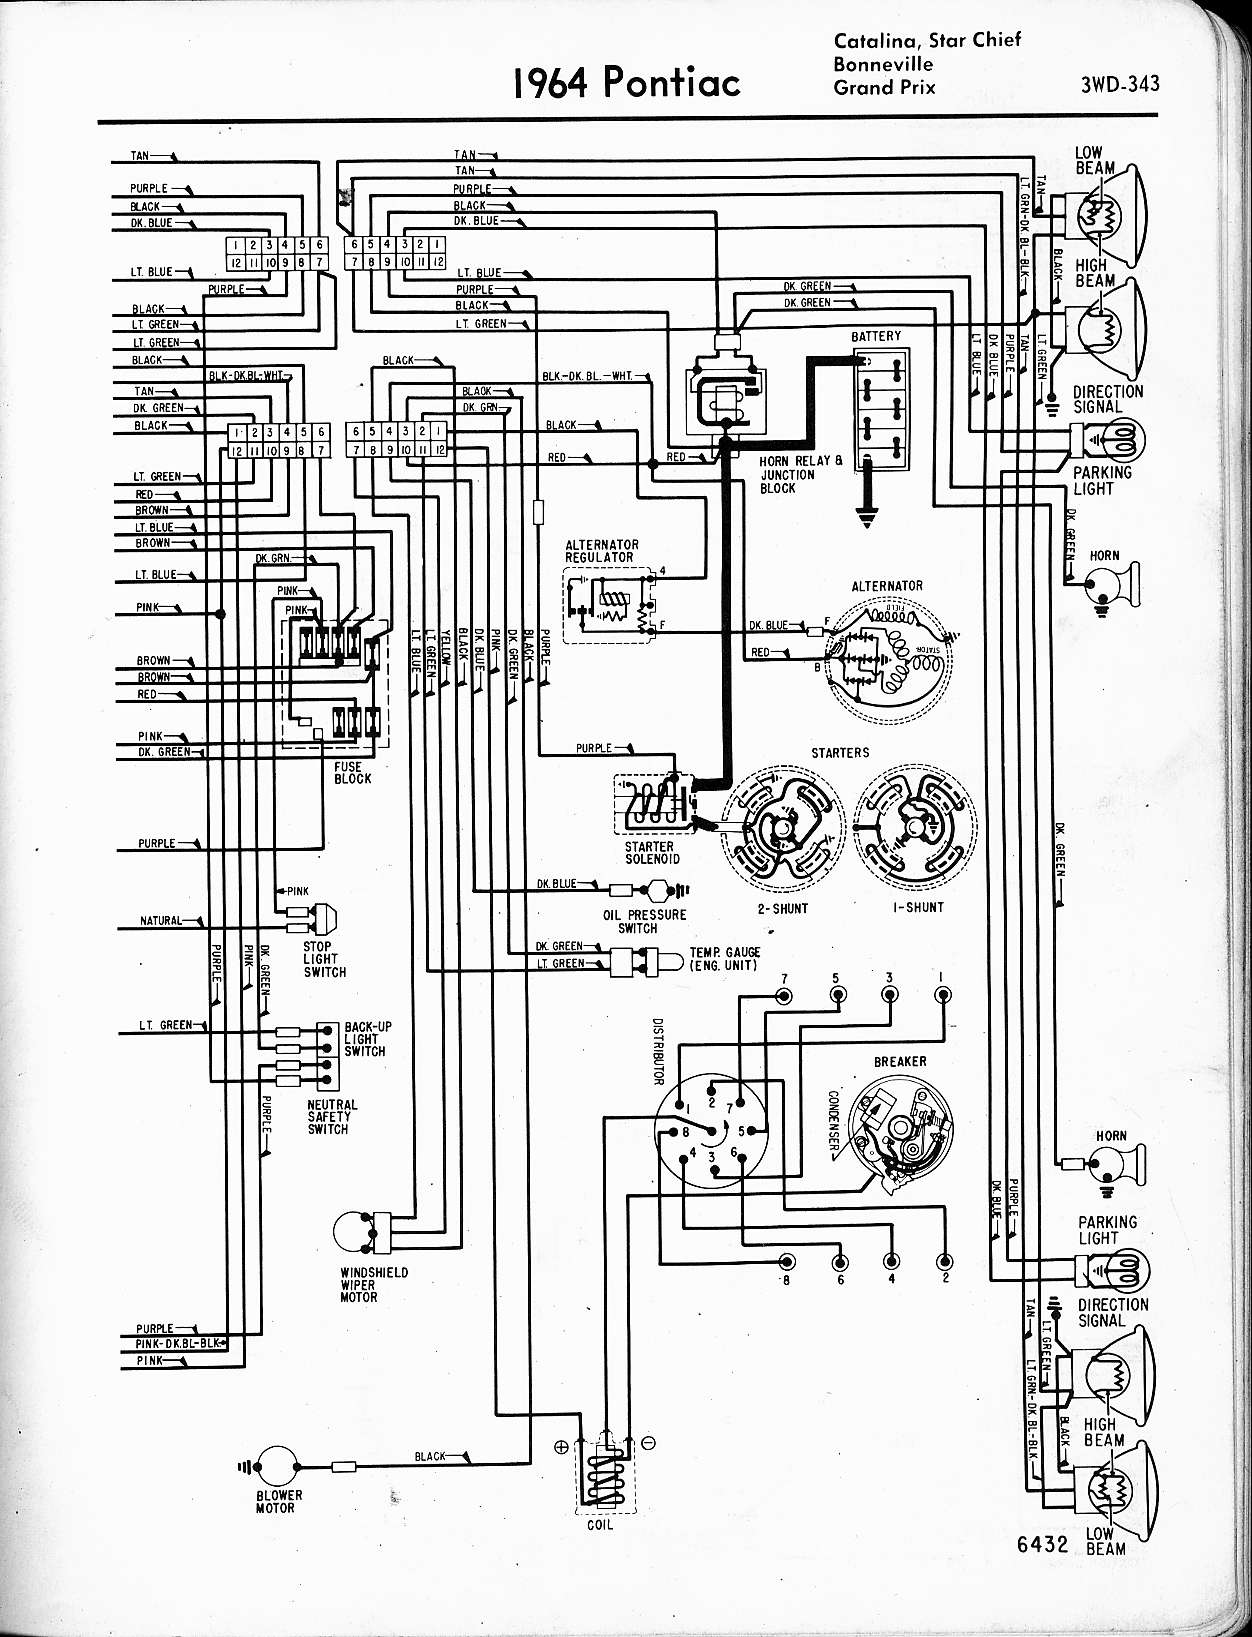 motor 1992 general motors wiring diagram manualprofessional service trade edition motor domestic wiring diagram manual